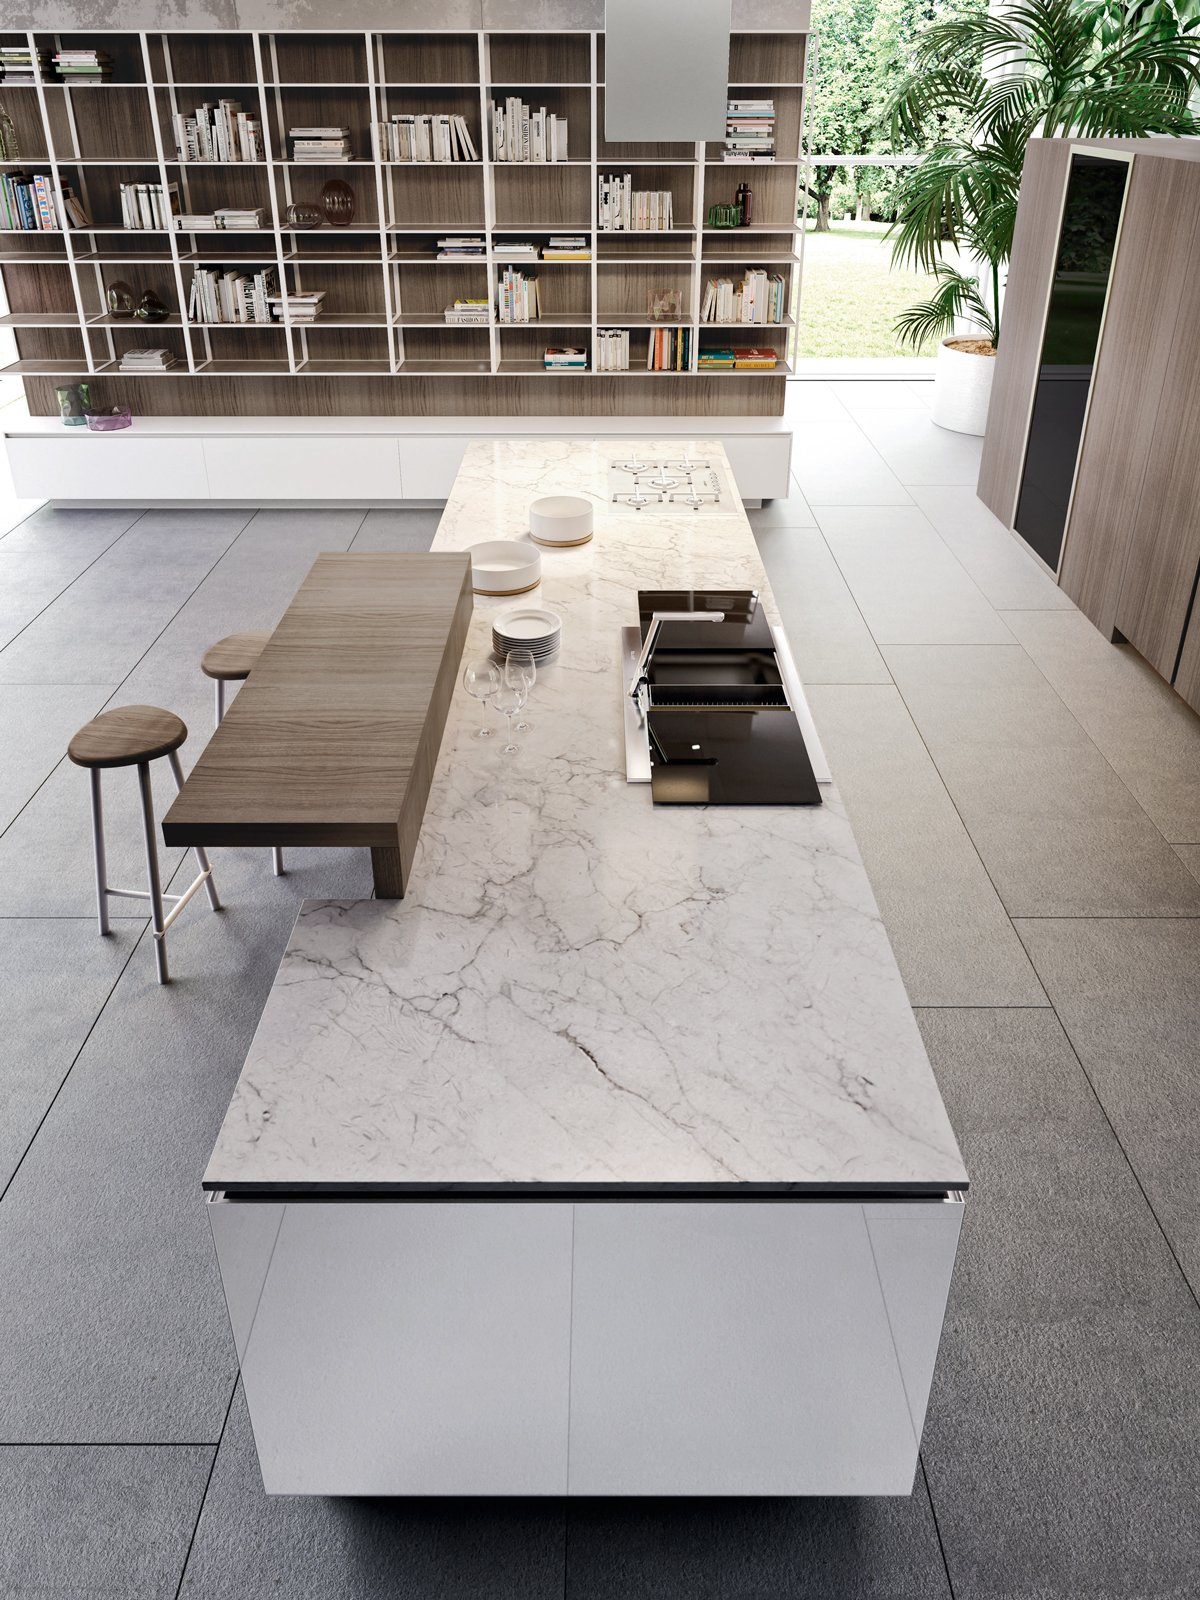 Beautiful Top Cucina Moderna Contemporary - Acomo.us - acomo.us